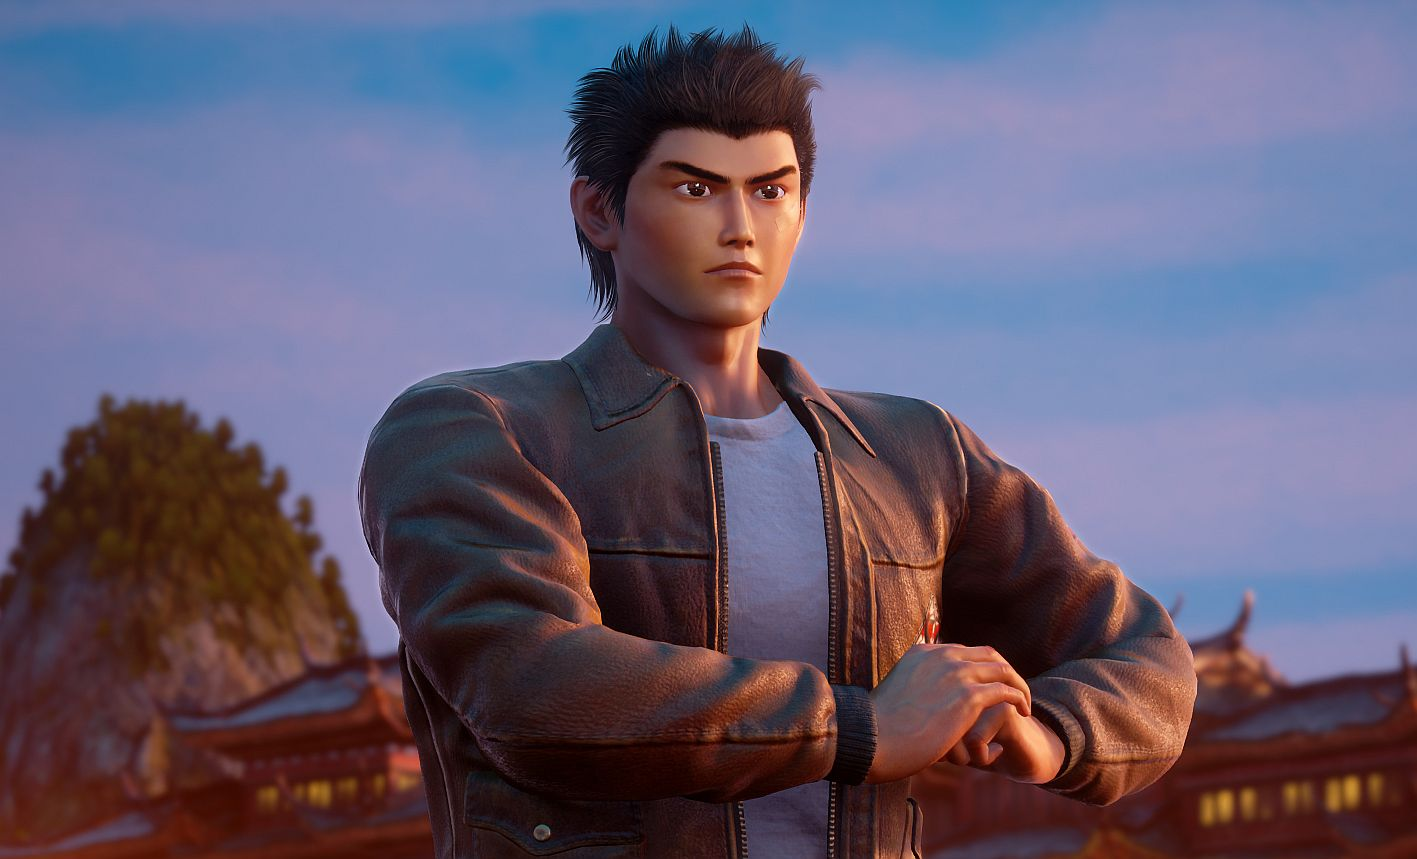 Shenmue 3 PC minimum and recommended PC specs revealed - VG247